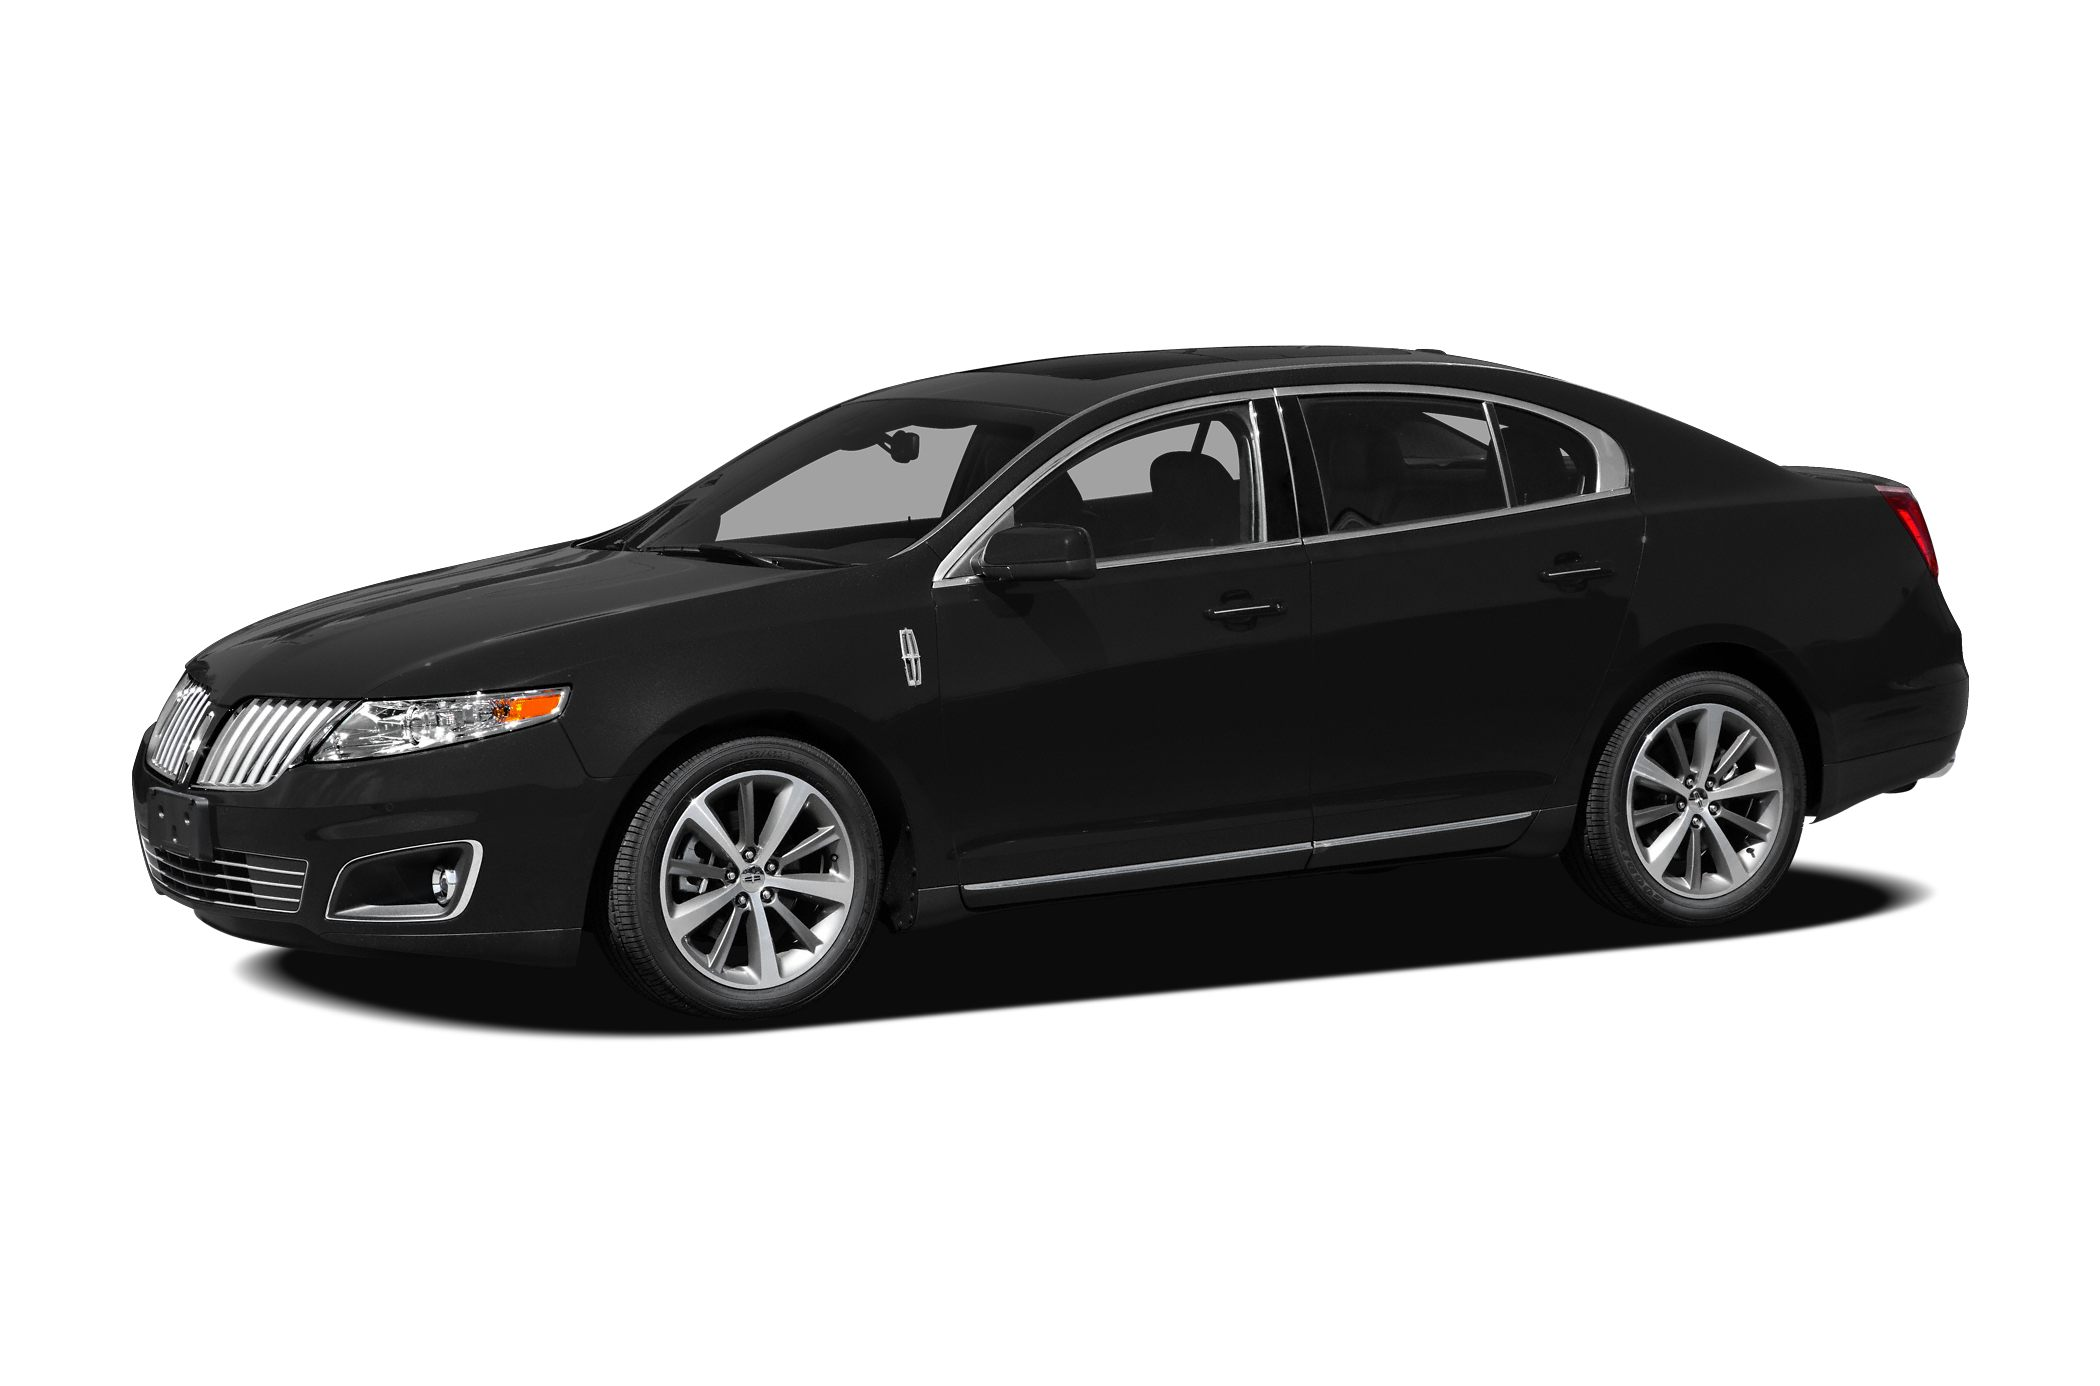 2009 Lincoln MKS Sedan for sale in Peoria for $17,990 with 63,200 miles.